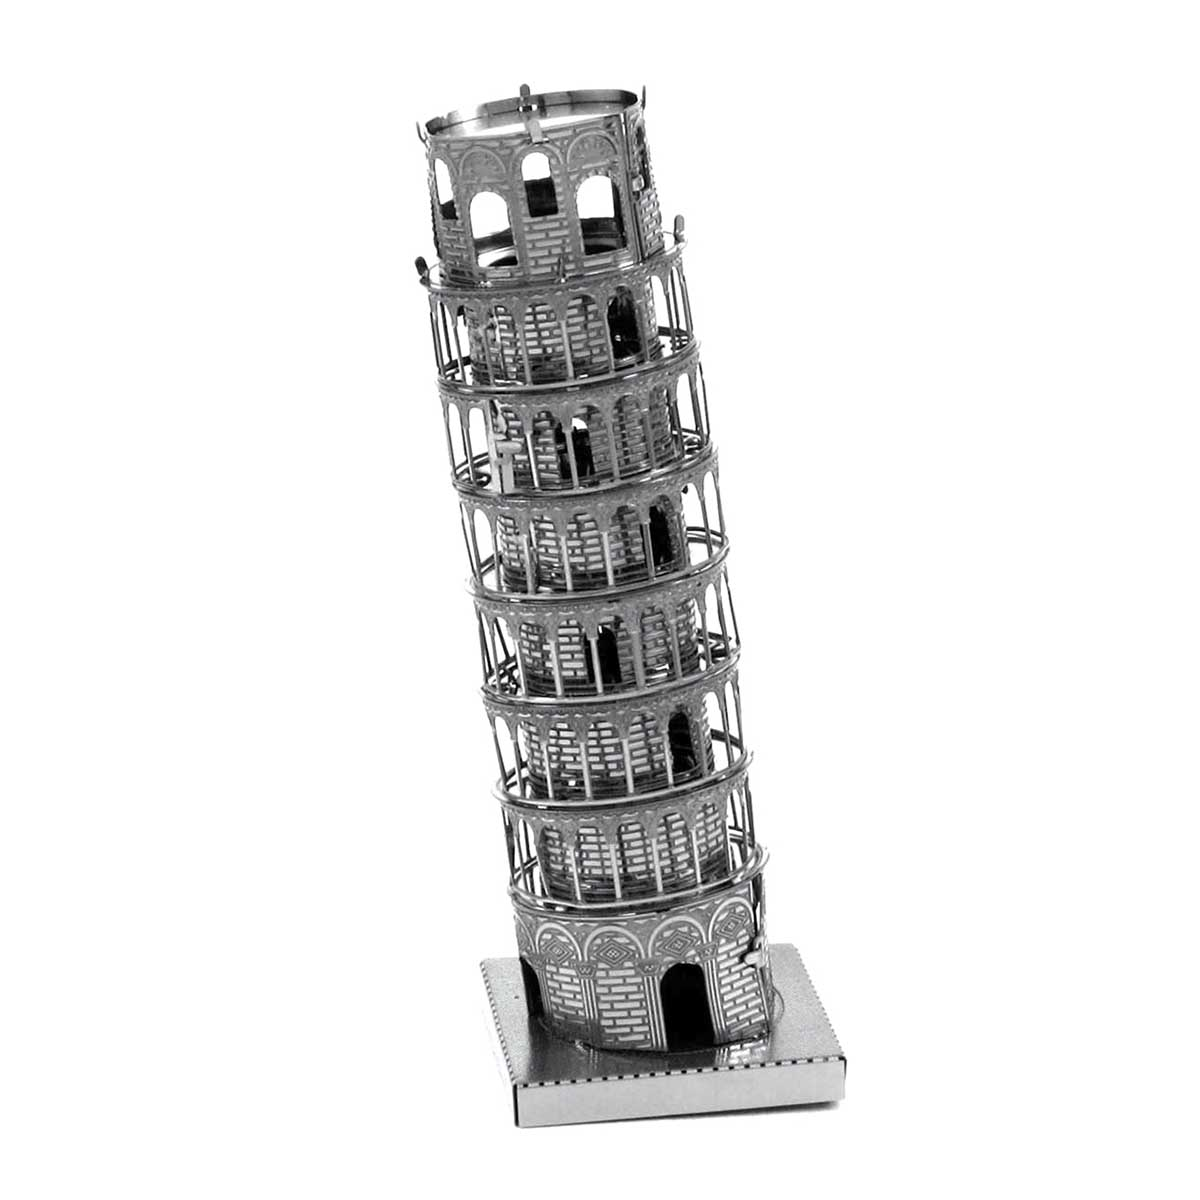 Leaning Tower of Pisa Landmarks / Monuments 3D Puzzle